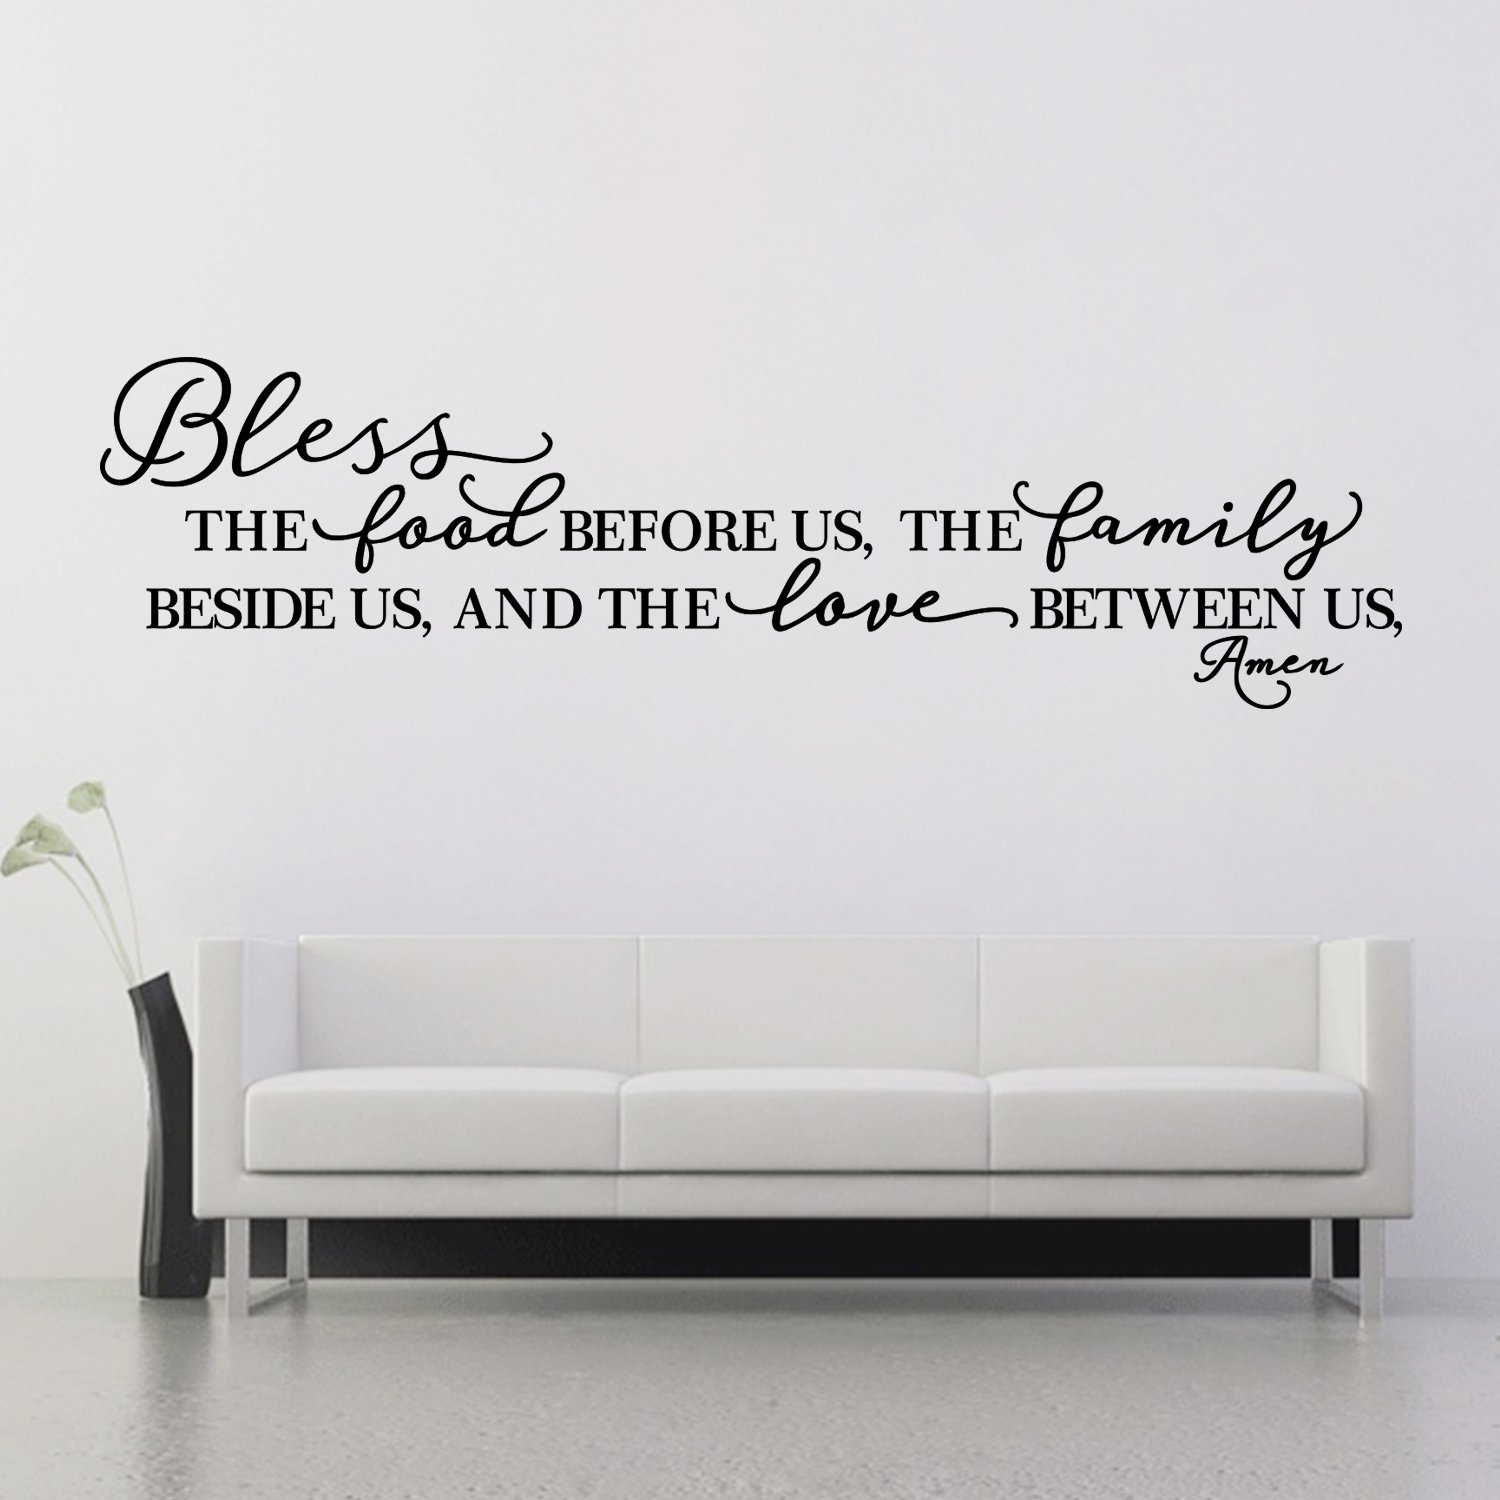 BOLLEPO Kitchen Wall Stickers Home Decor, Dining & Cooking Quote Decal Heart Removable Vinyl Art Decoration (Bless The Food Before Us, The Family Beside Us, and The Love Between Us, Amen) by BOLLEPO (Image #2)